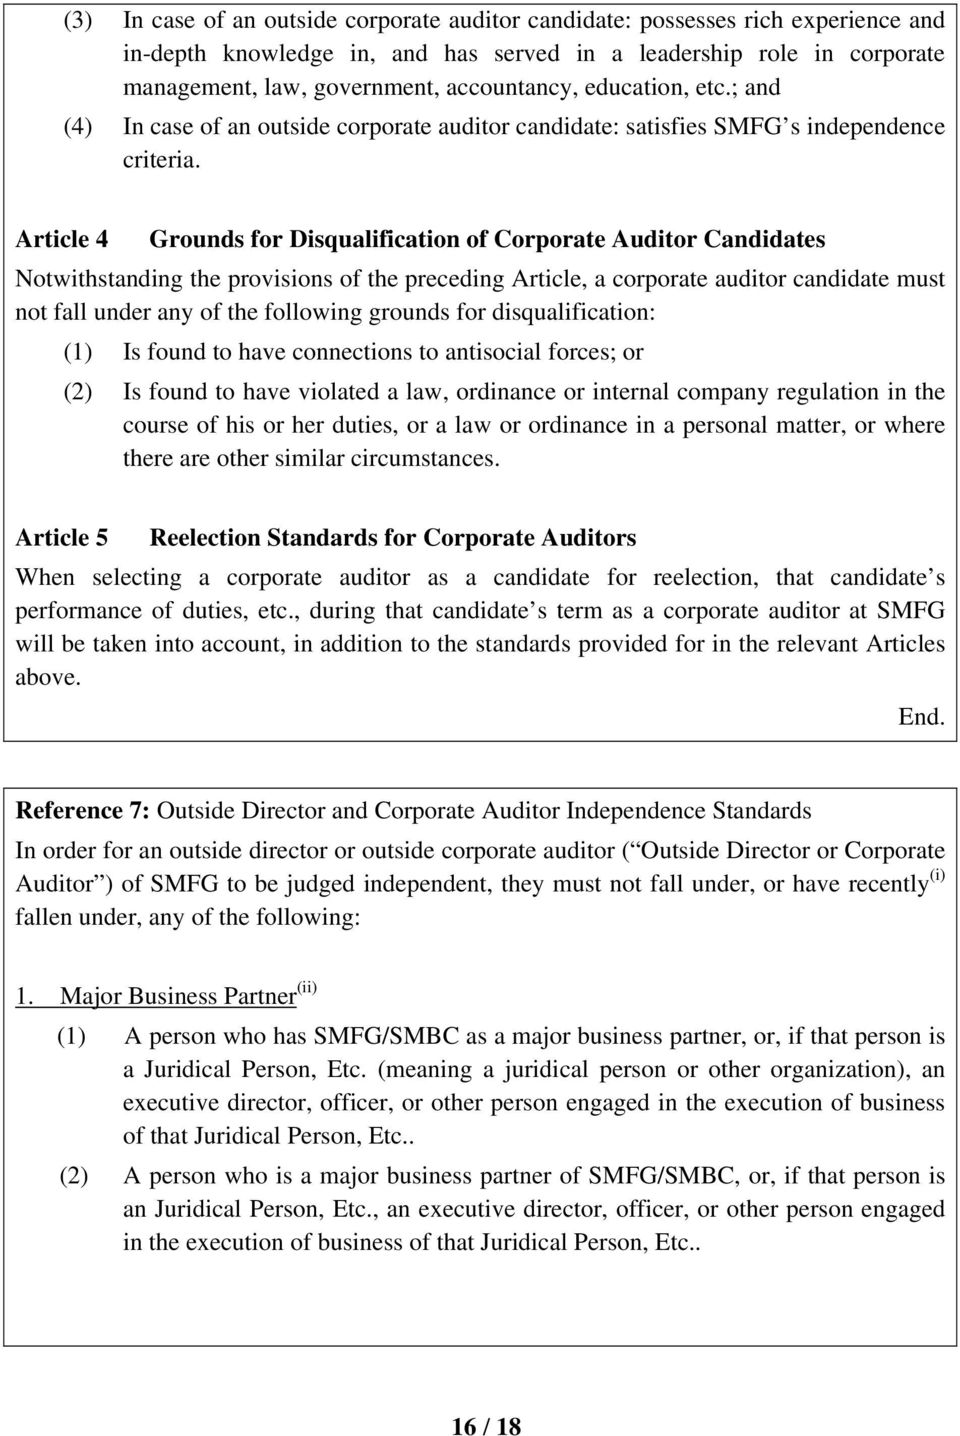 Article 4 Grounds for Disqualification of Corporate Auditor Candidates Notwithstanding the provisions of the preceding Article, a corporate auditor candidate must not fall under any of the following